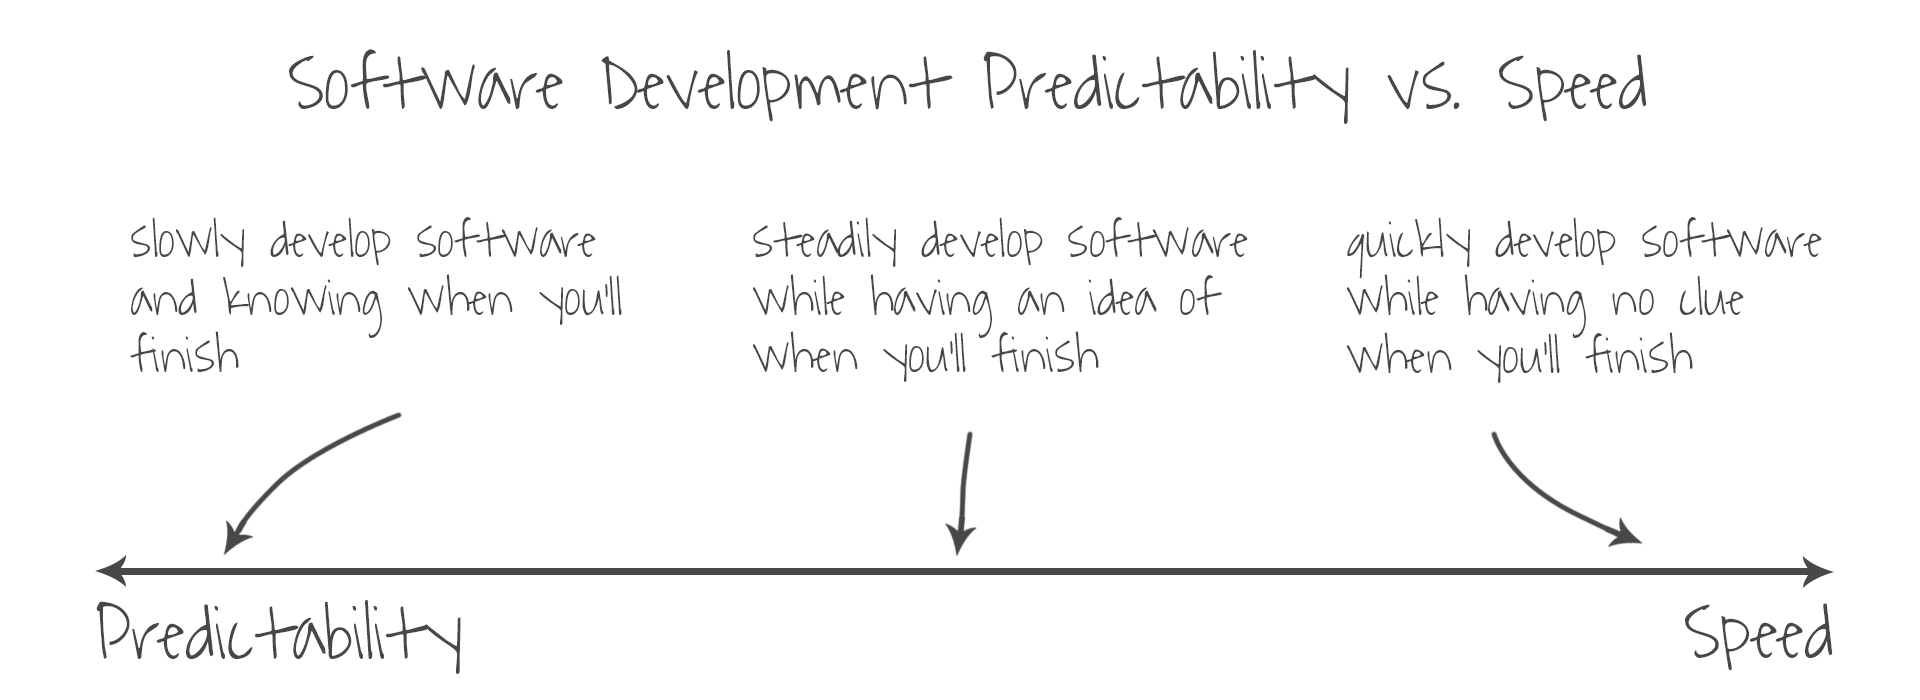 software-development-predictability-vs-speed